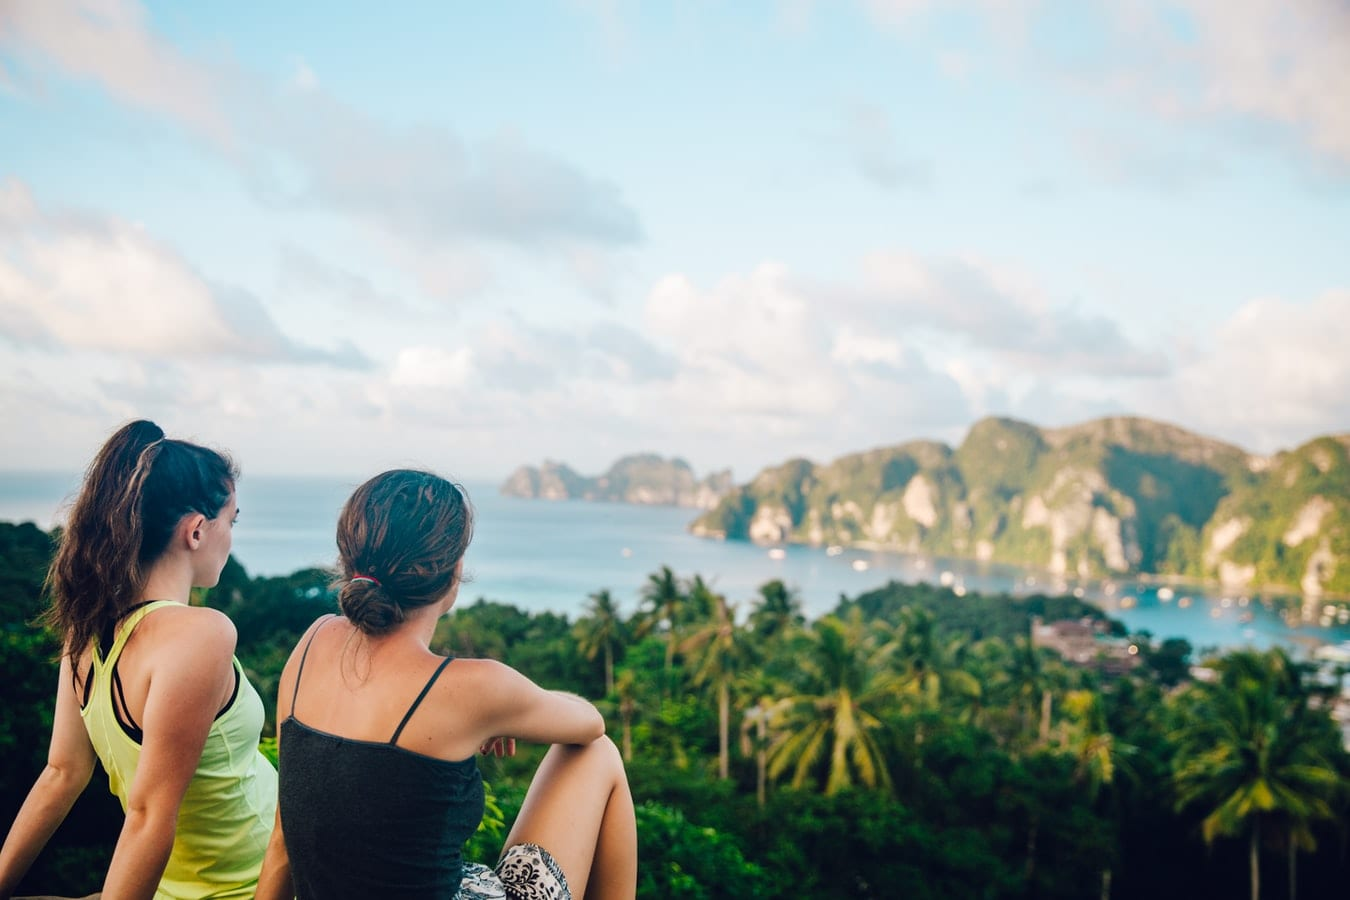 Girls watching a view of forest and ocean in Thailand